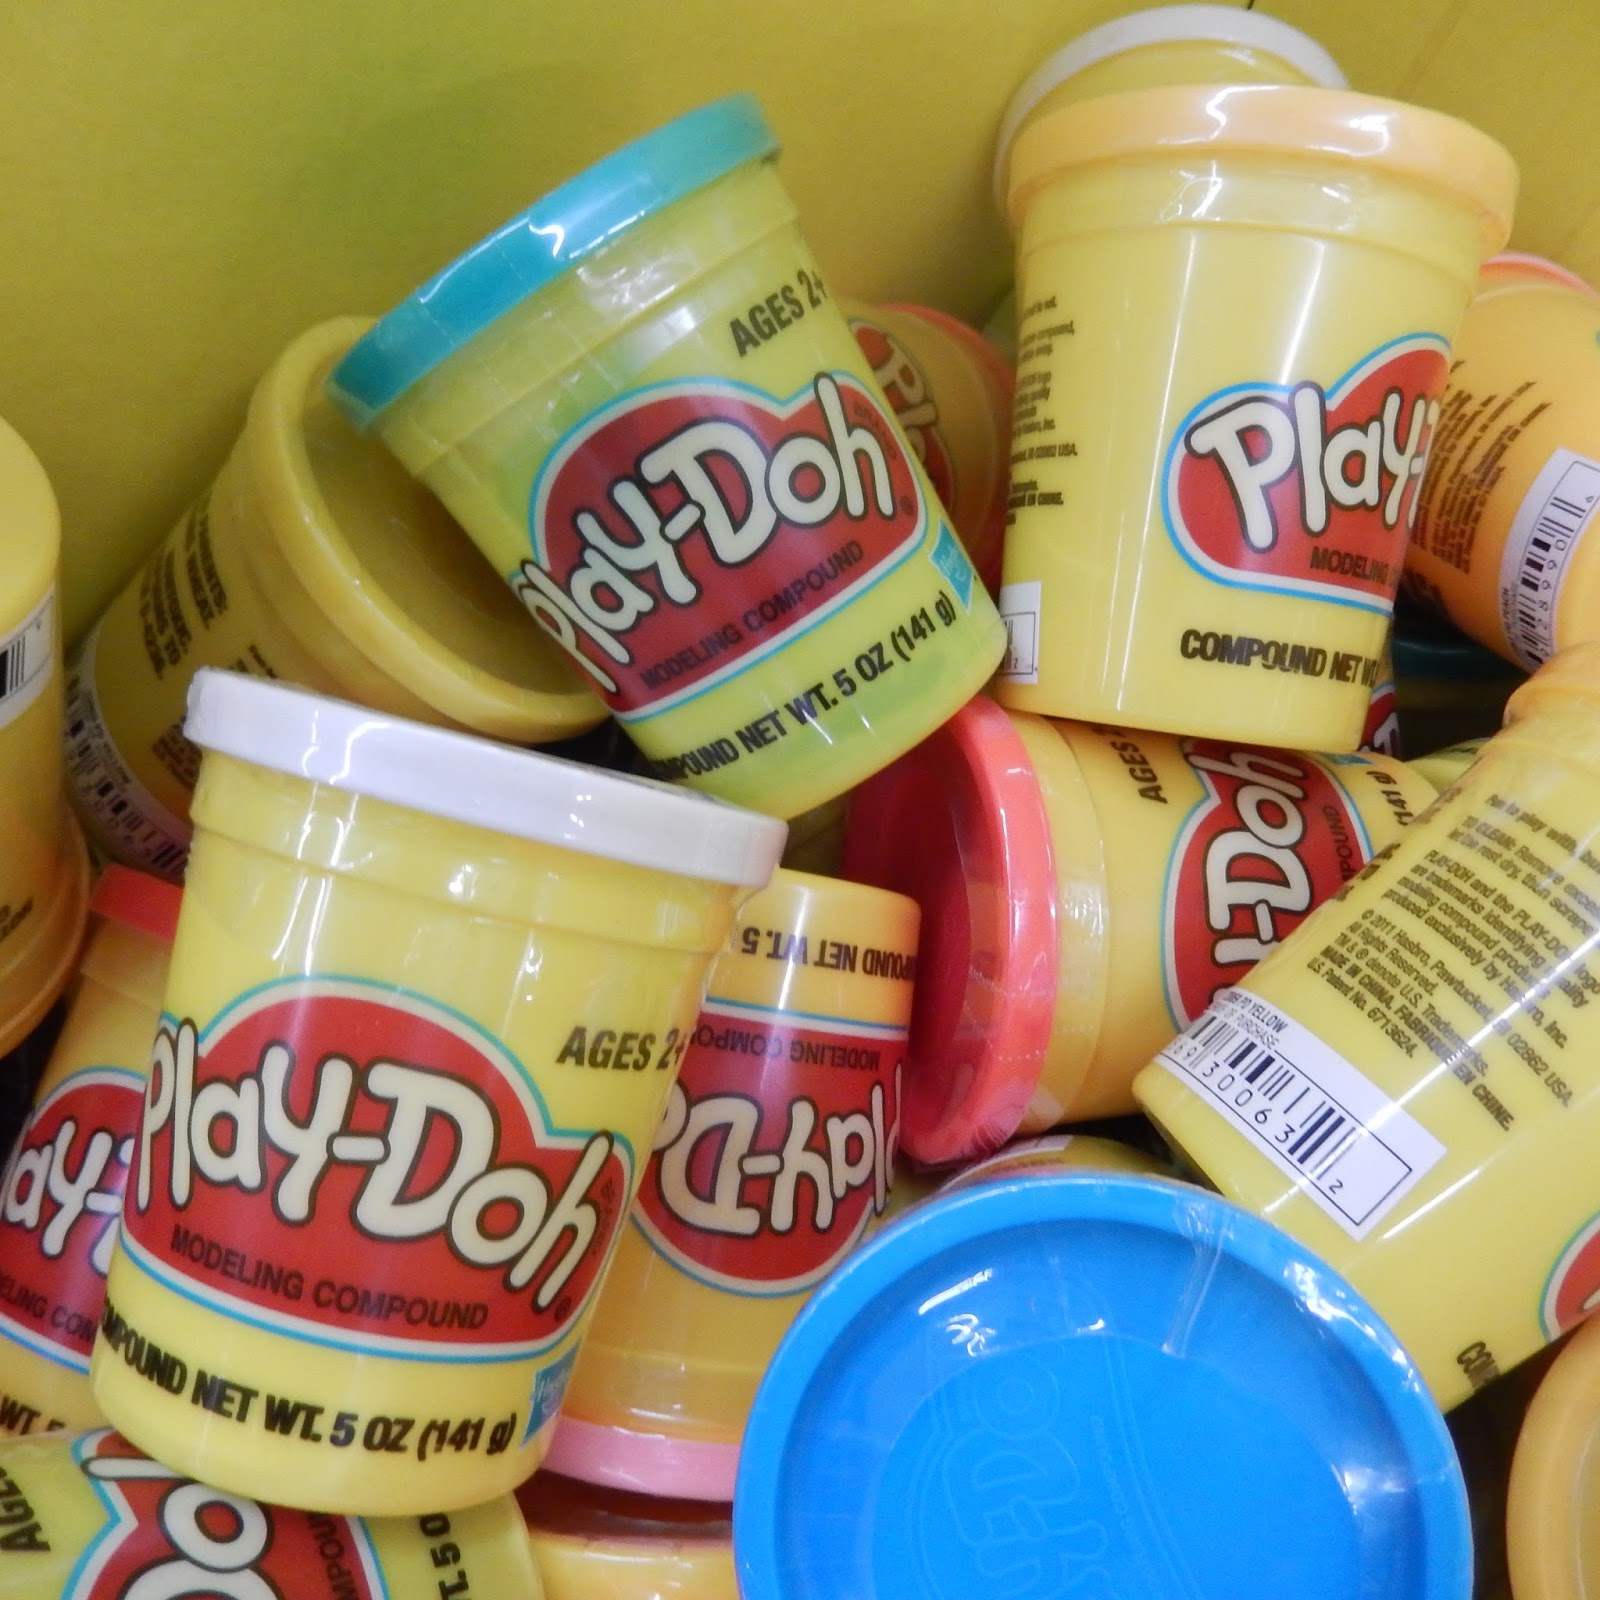 Play Doh didn't begin as a type of modeling compound or art and craft material at all. In the early part of the 1900's, it was used as a wall cleaner, ...